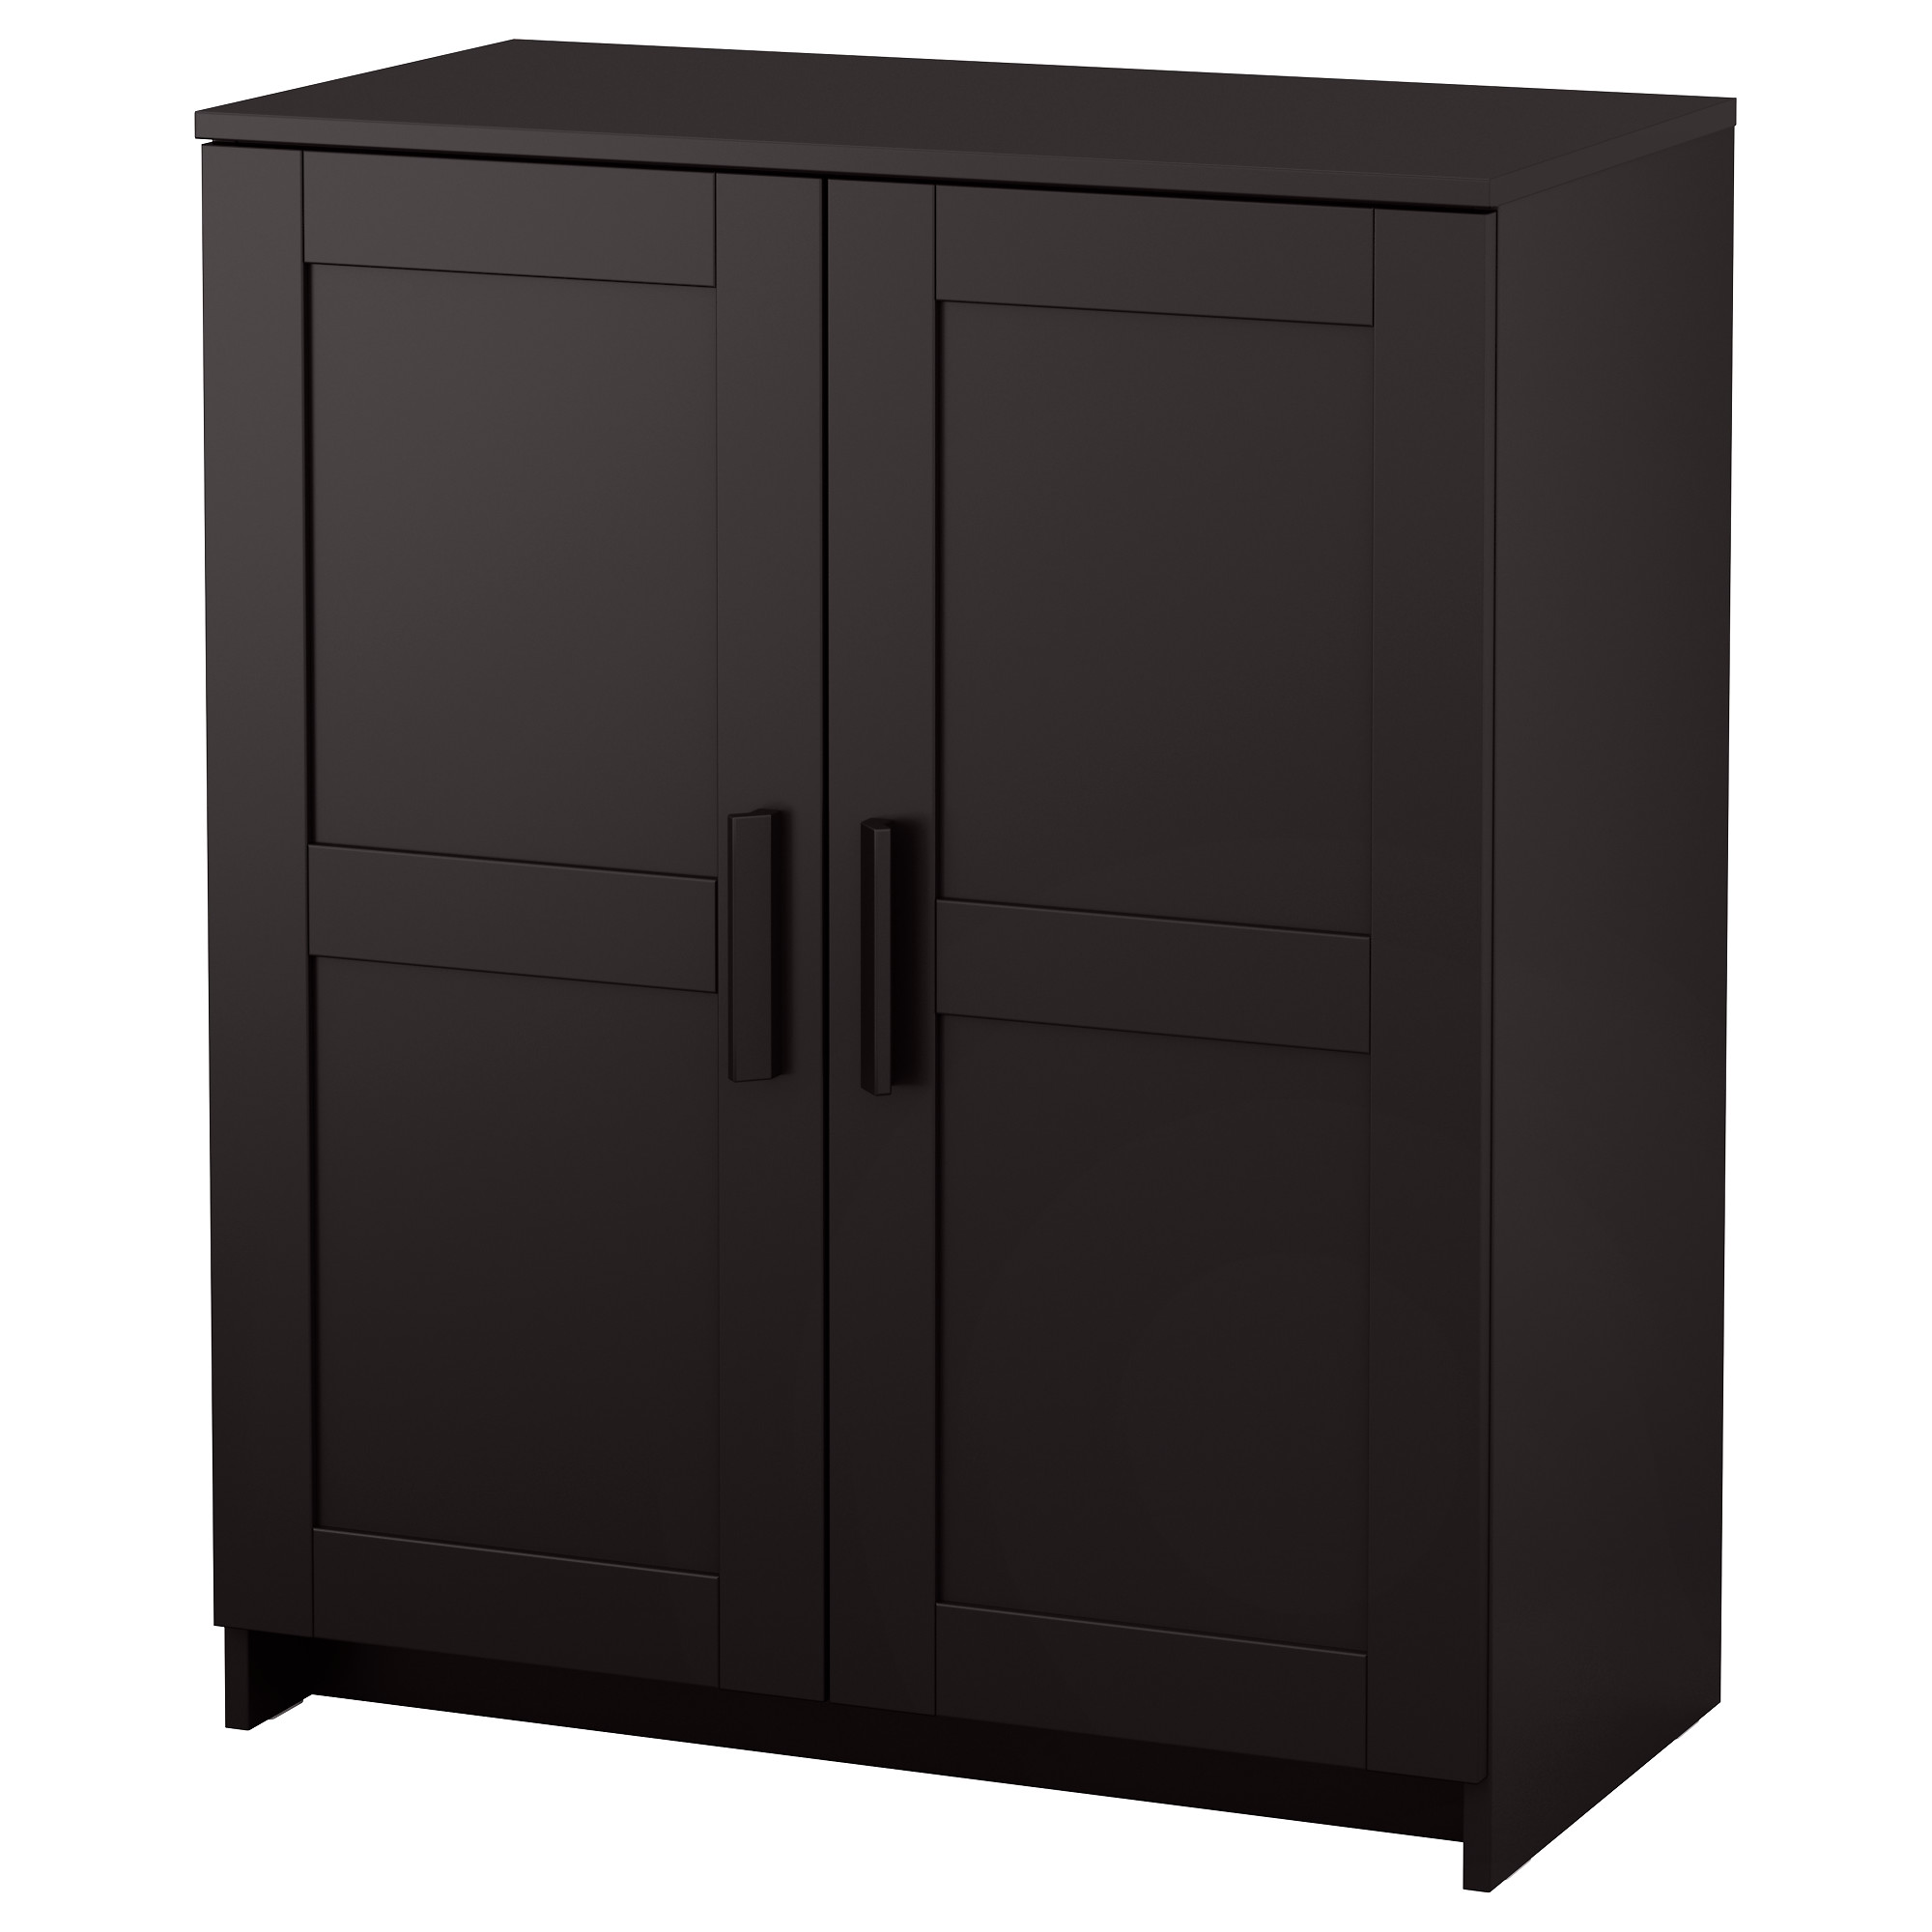 black furniture ikea. Black Furniture Ikea P